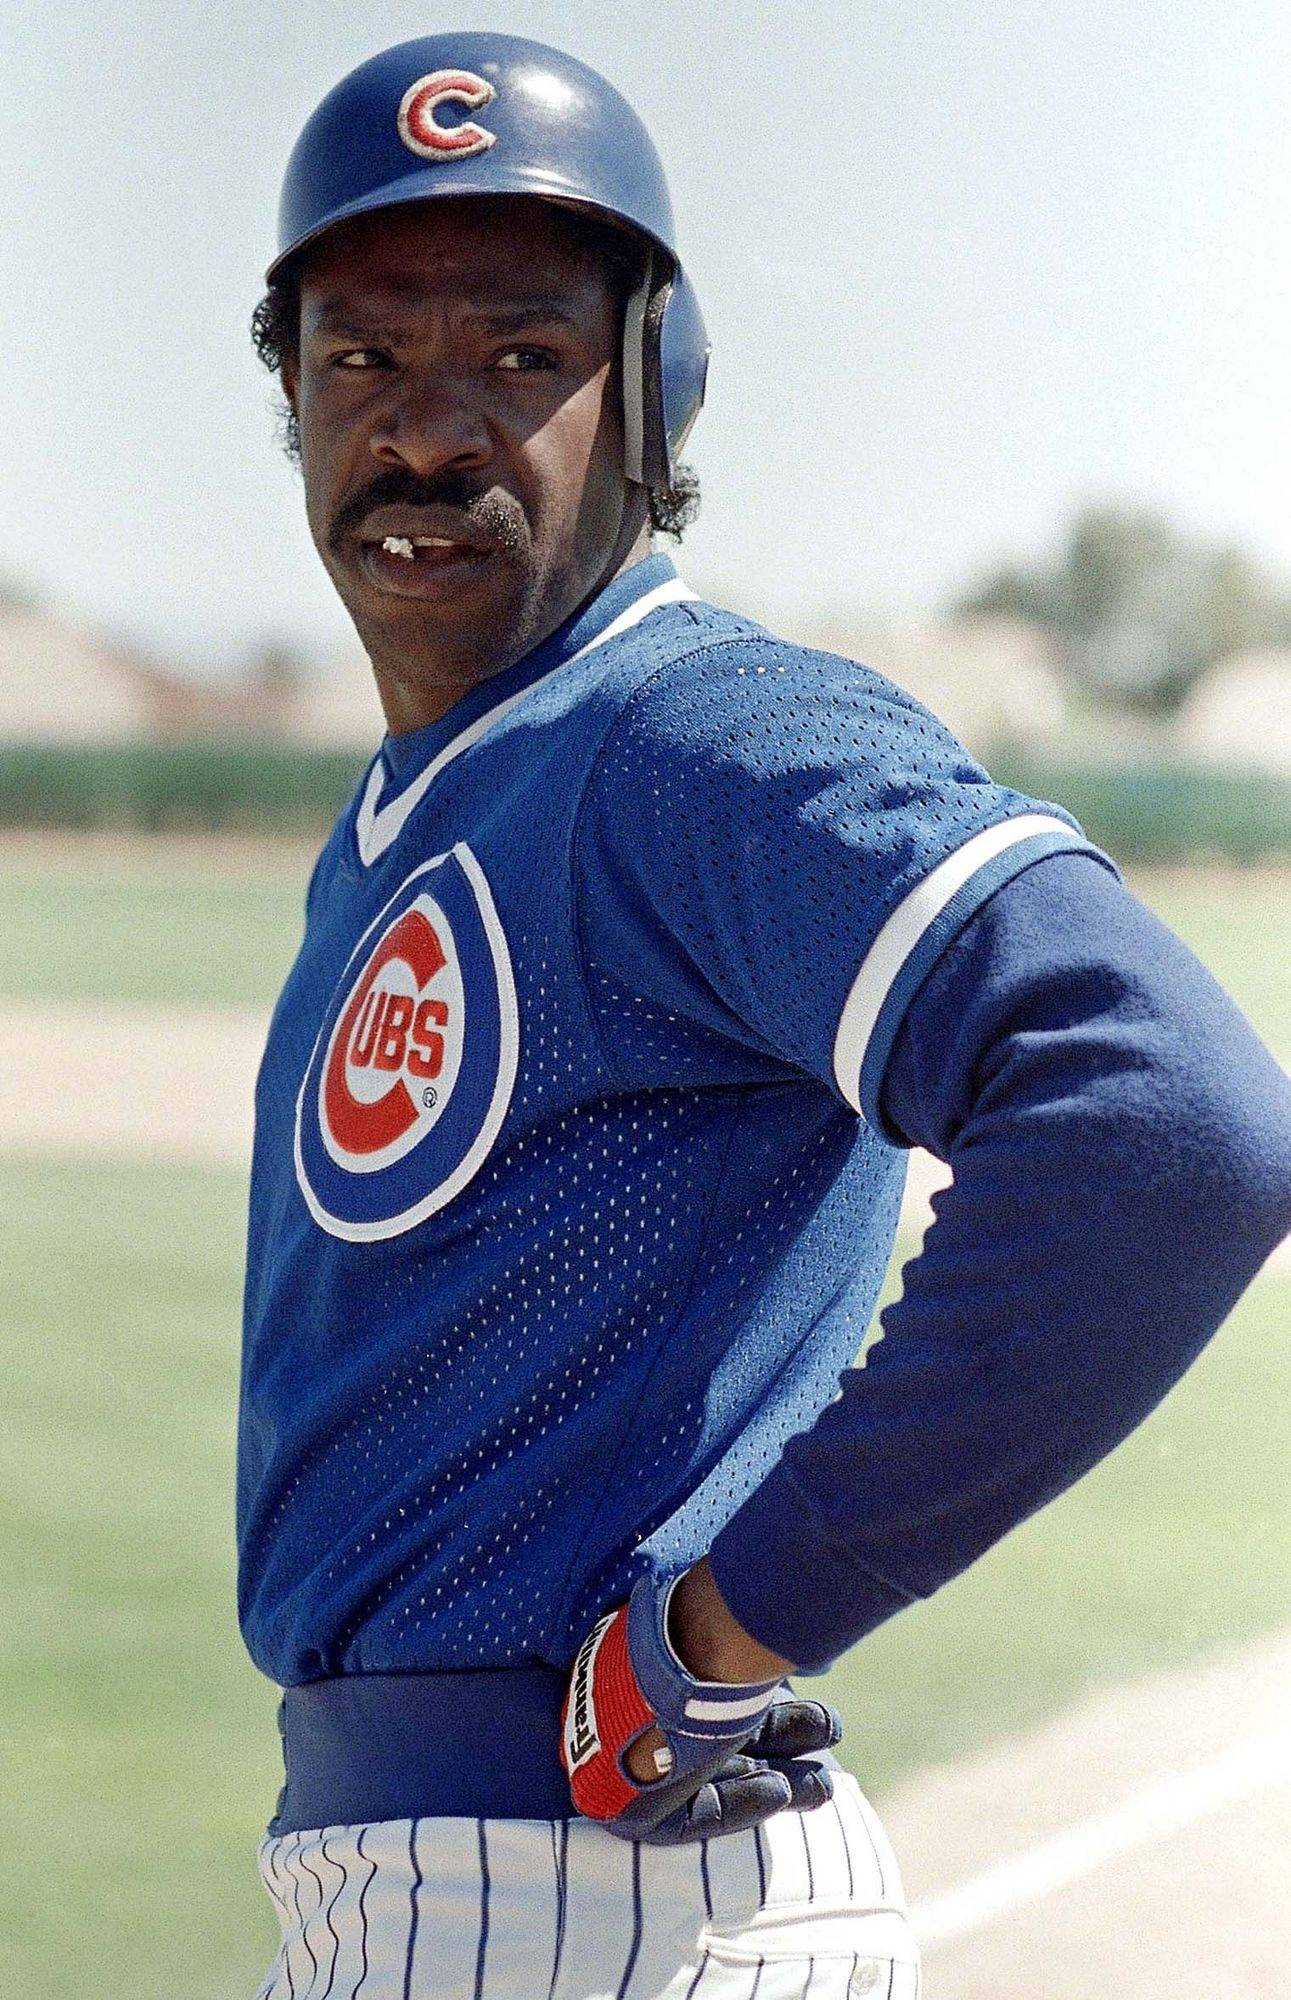 Andre Dawson will celebrate his induction into the National Baseball Hall of Fame and his career ties to the Chicago area with a celebrity softball event at Schaumburg's Alexian Field July 28.